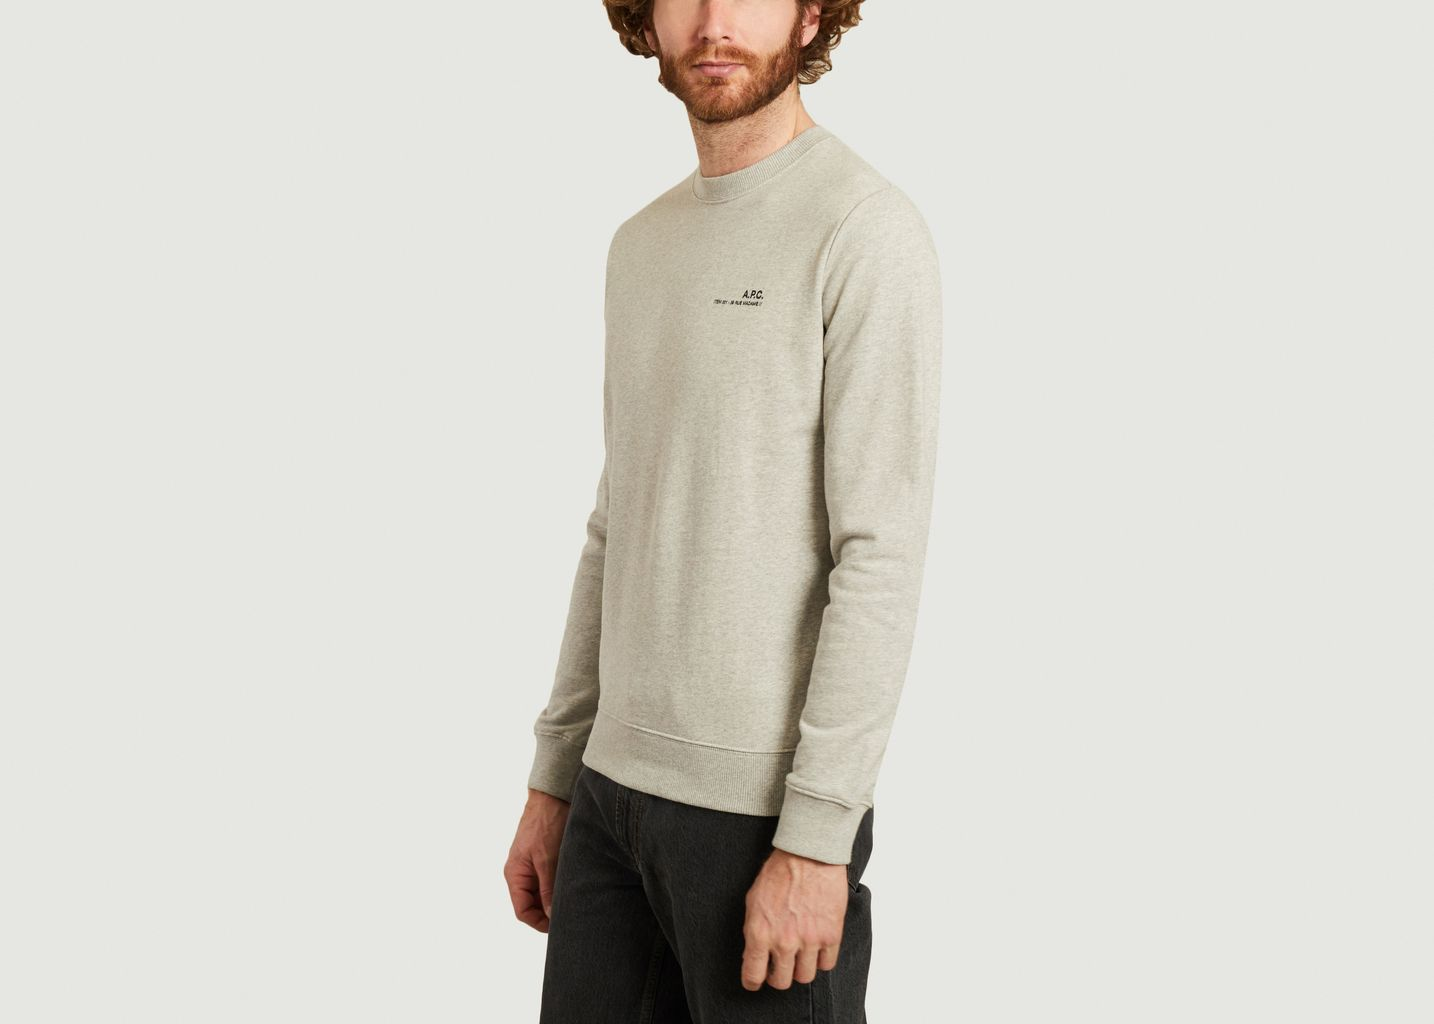 Sweatshirt Item - A.P.C.